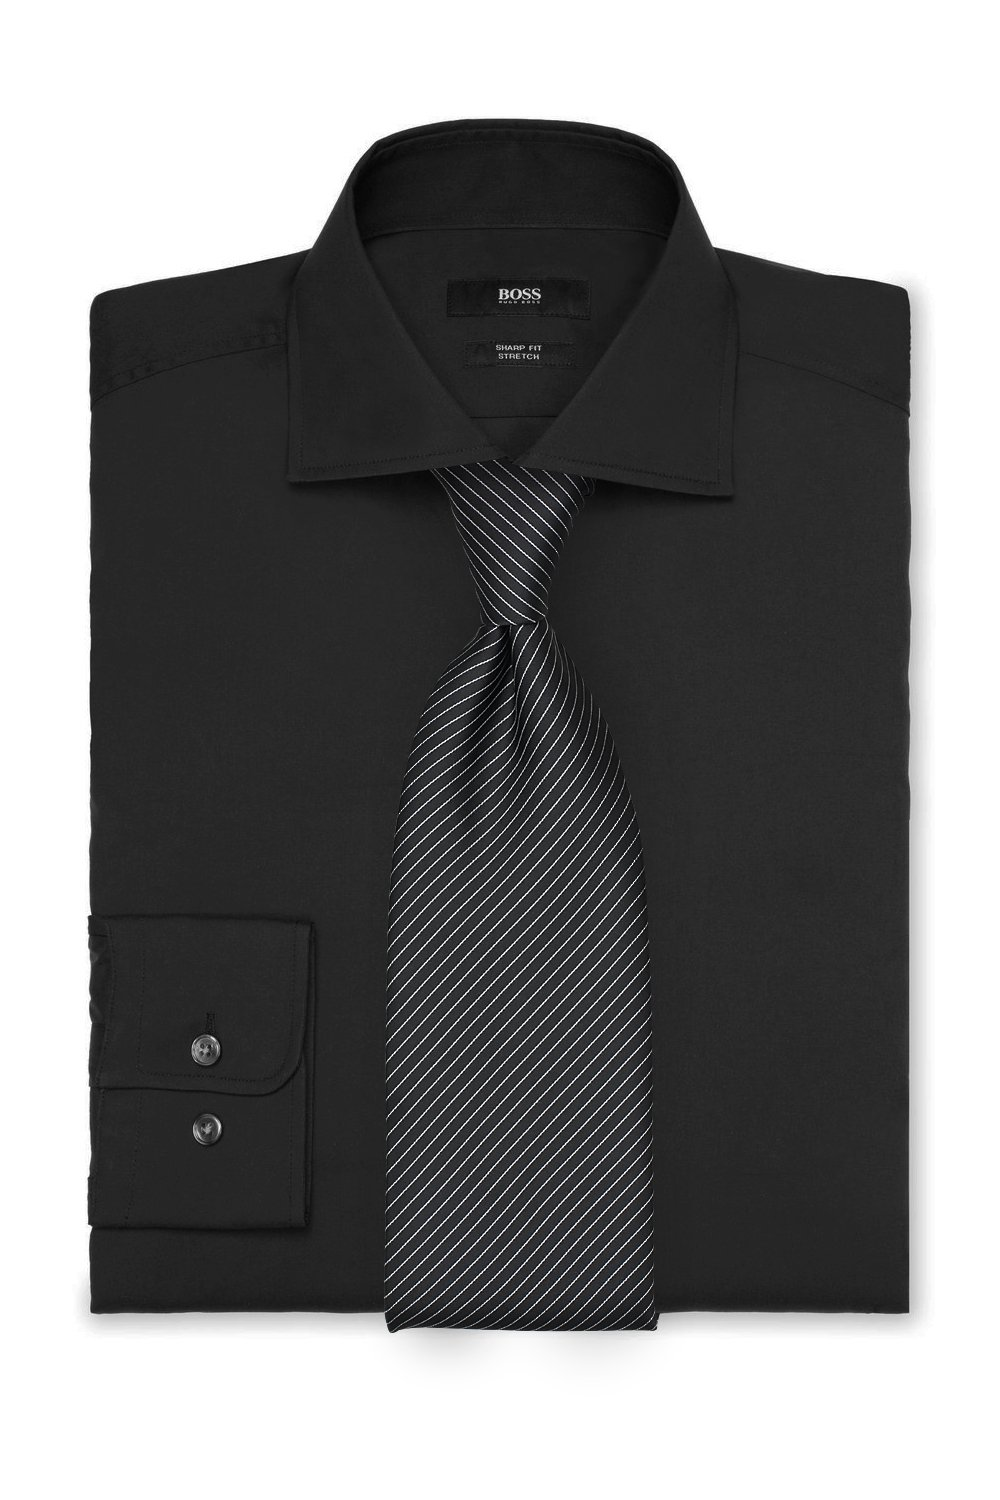 Striped Tie and Black Shirt